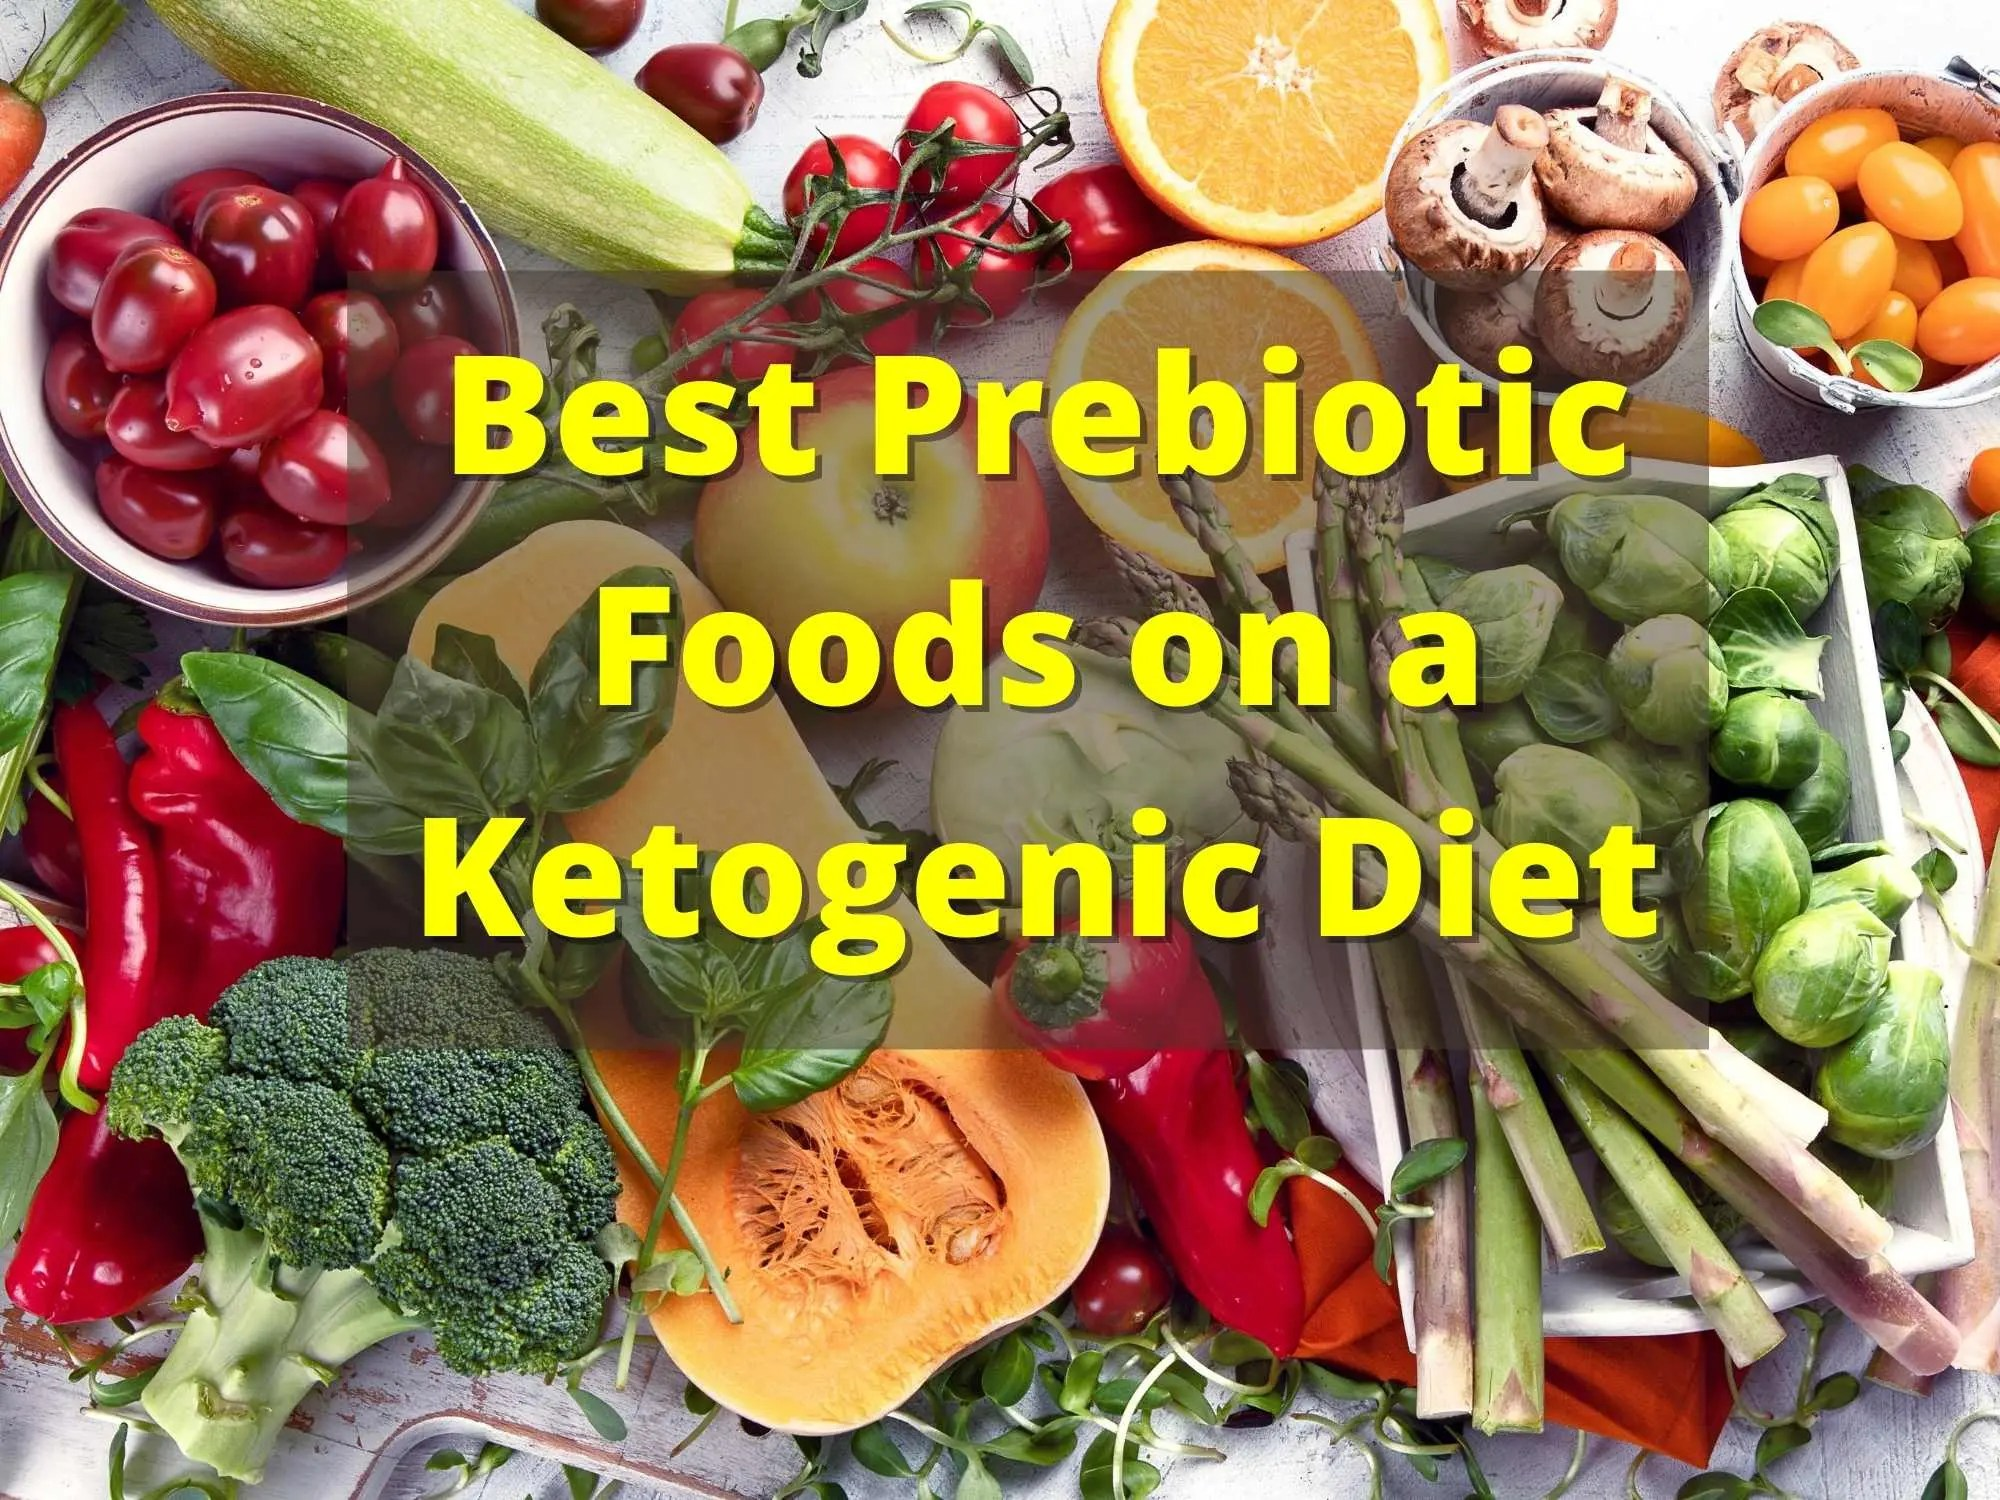 The Best Prebiotic Foods on the Ketogenic Diet